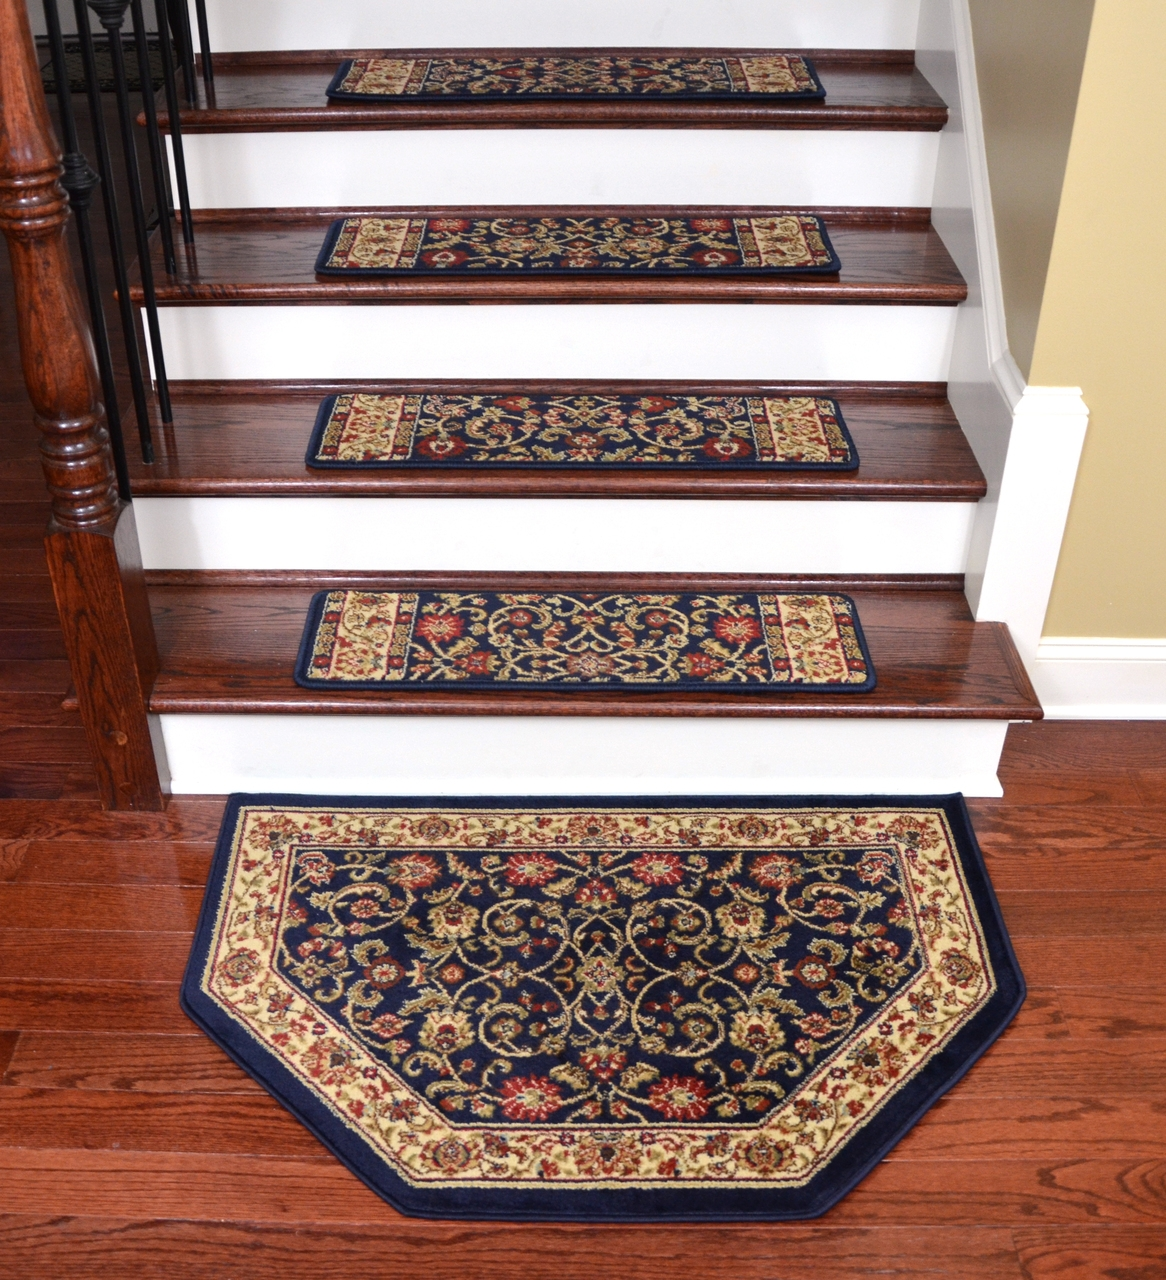 Accessories Oriental Carpet Stair Treads With Wooden Flooring And With Regard To Oriental Carpet Stair Treads (View 10 of 15)